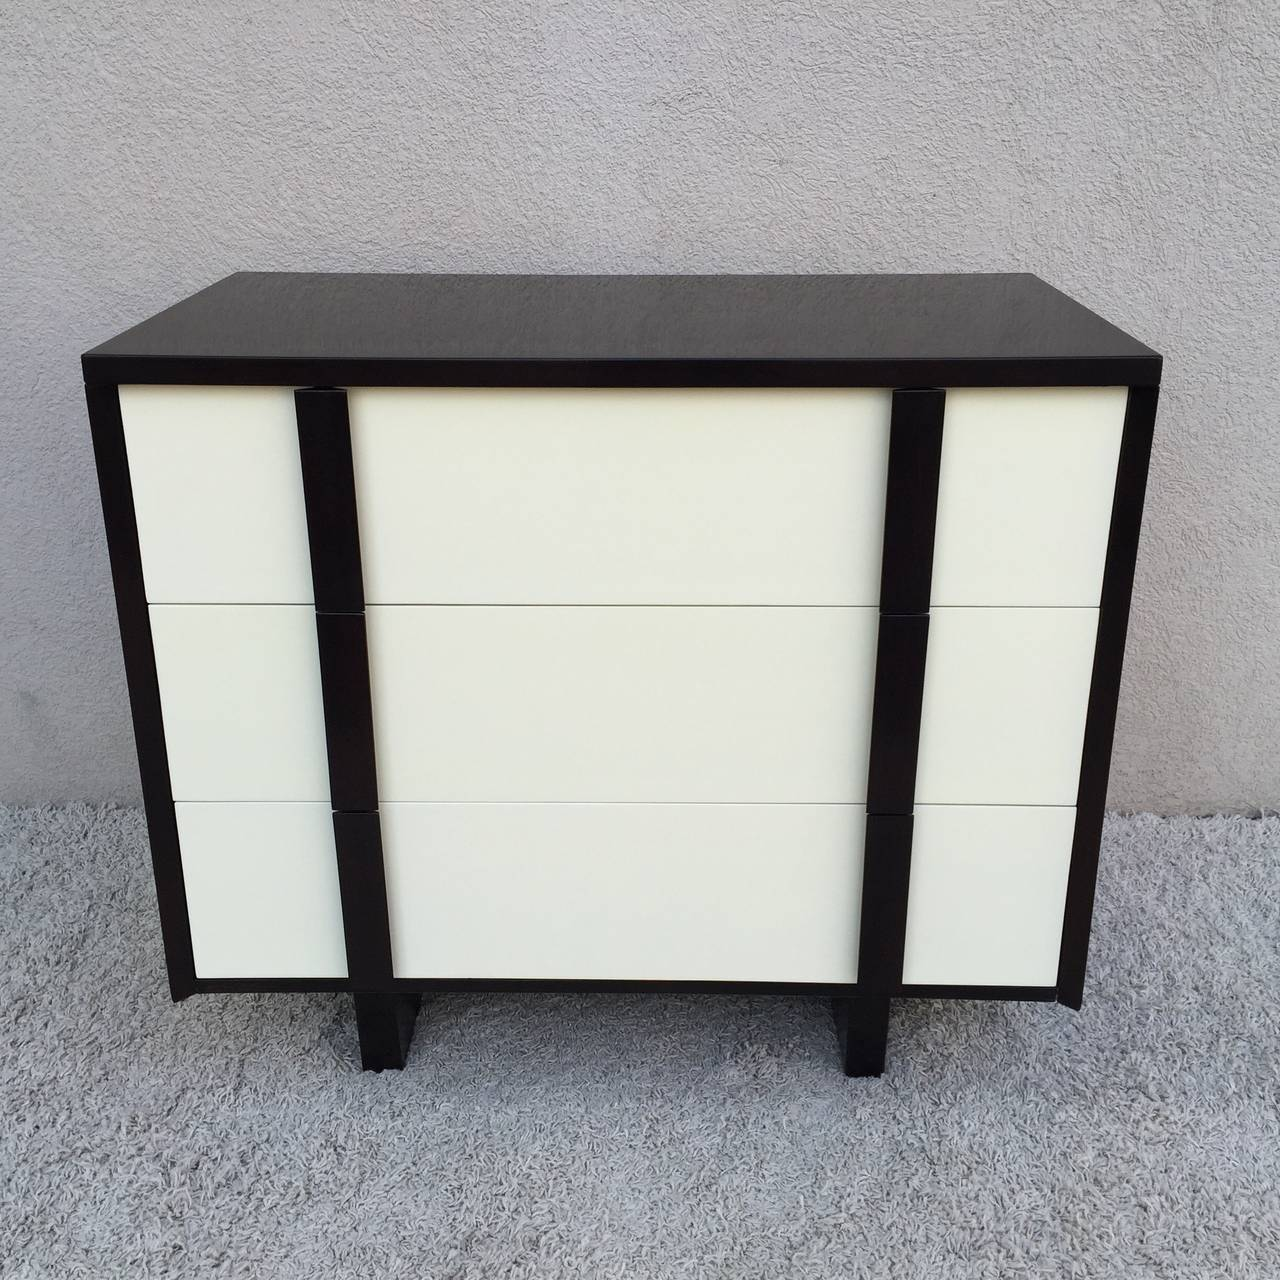 Pair of Paul Laszlo dark walnut off-white lacquered chest of draws with dark walnut pulls, hand rubbed finish.